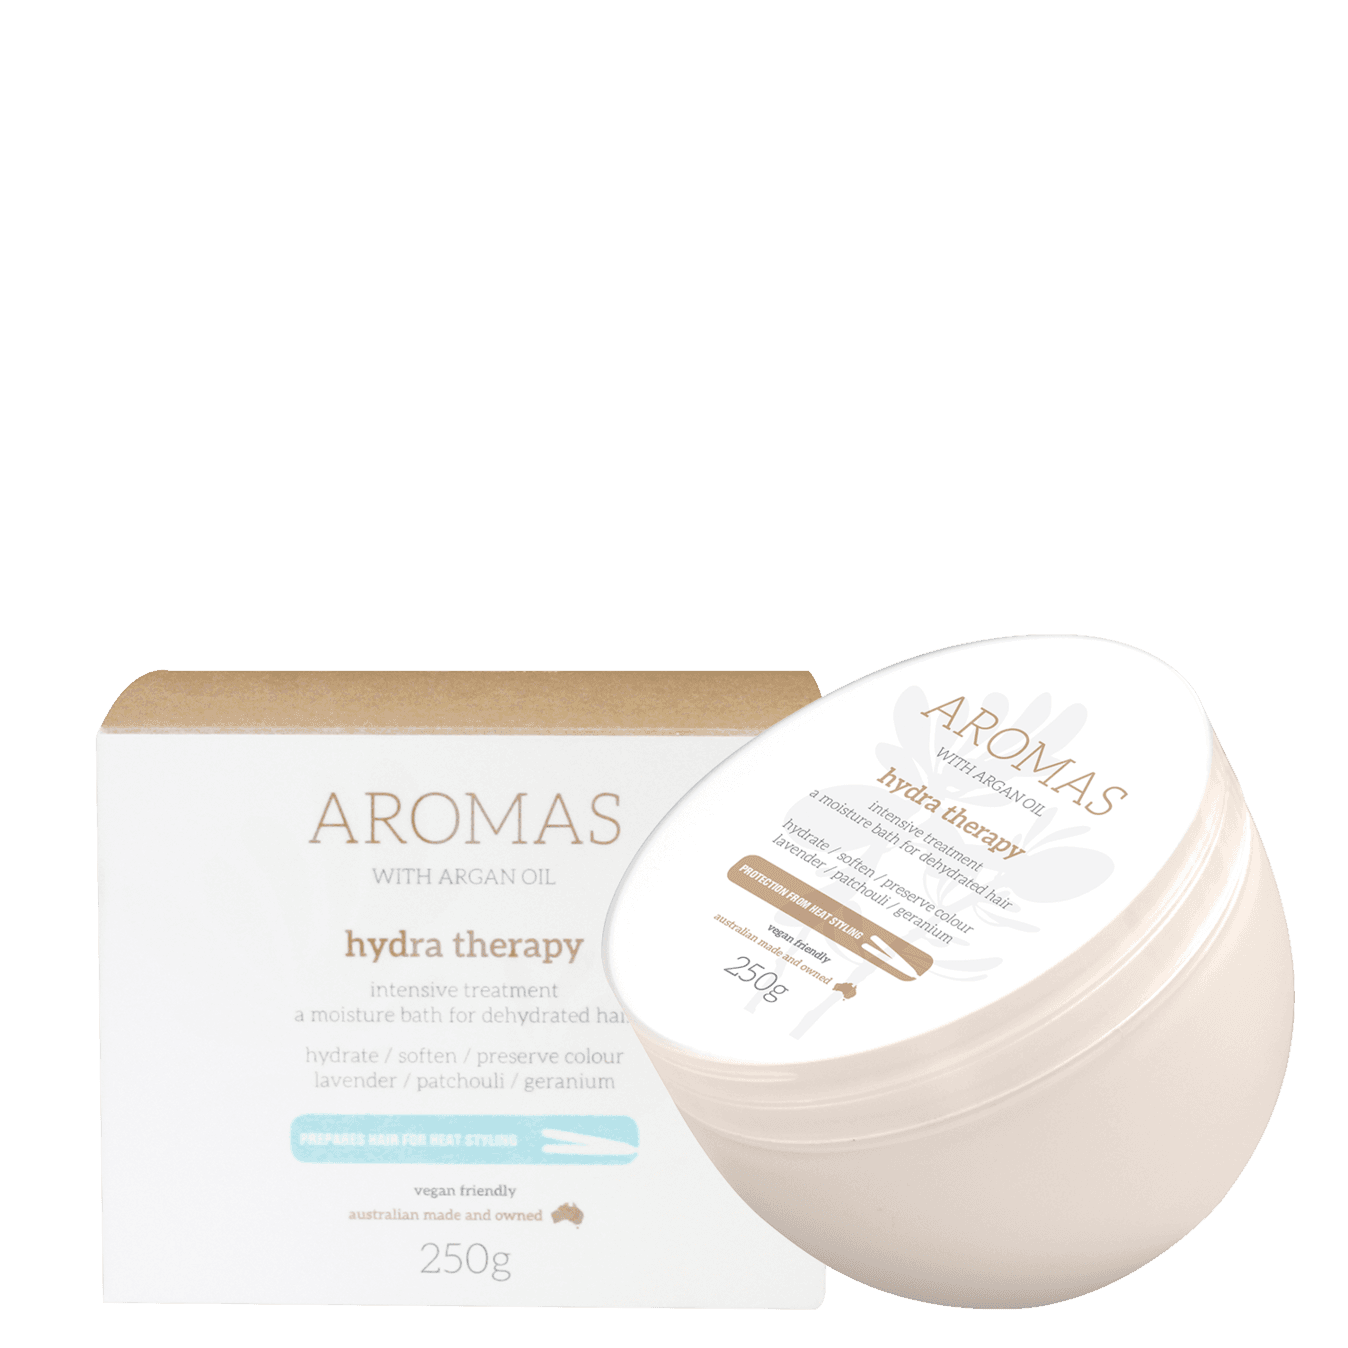 Aromas Hydra Therapy Treatment